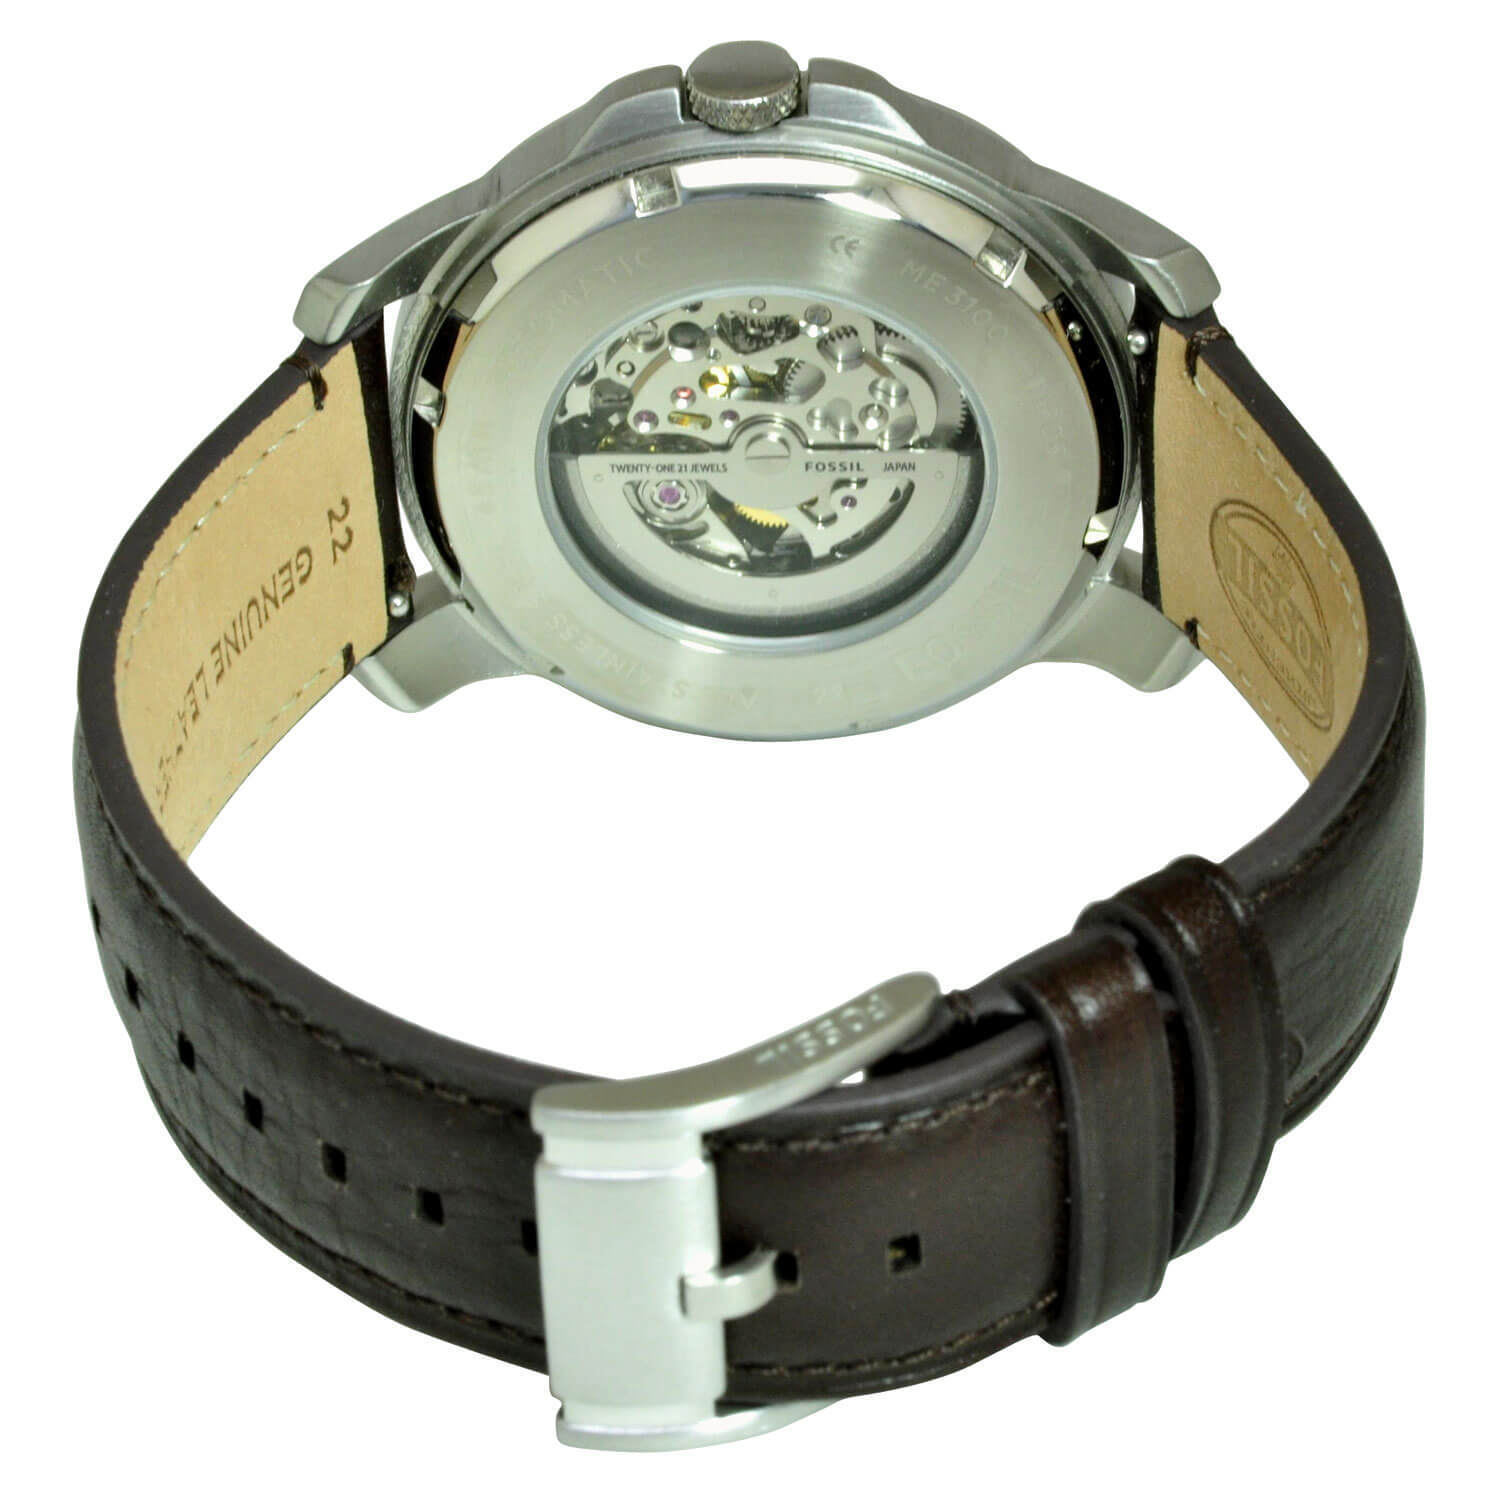 c23c00abe0c Shop Fossil Men s ME3100  Grant  Automatic Brown Leather Watch - Free  Shipping Today - Overstock - 10704224